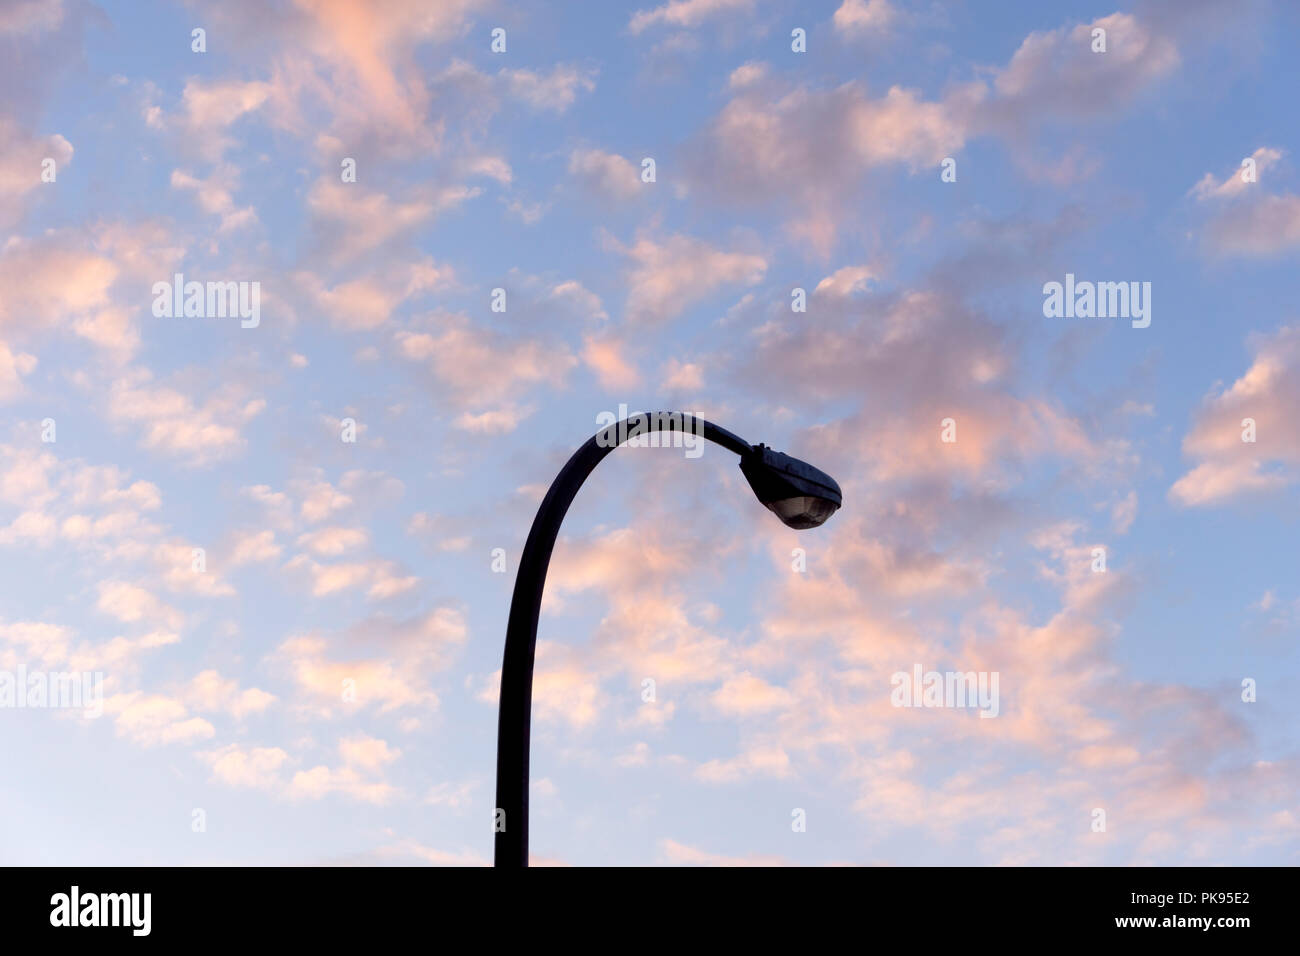 curved-streetlight-silhouetted-against-t